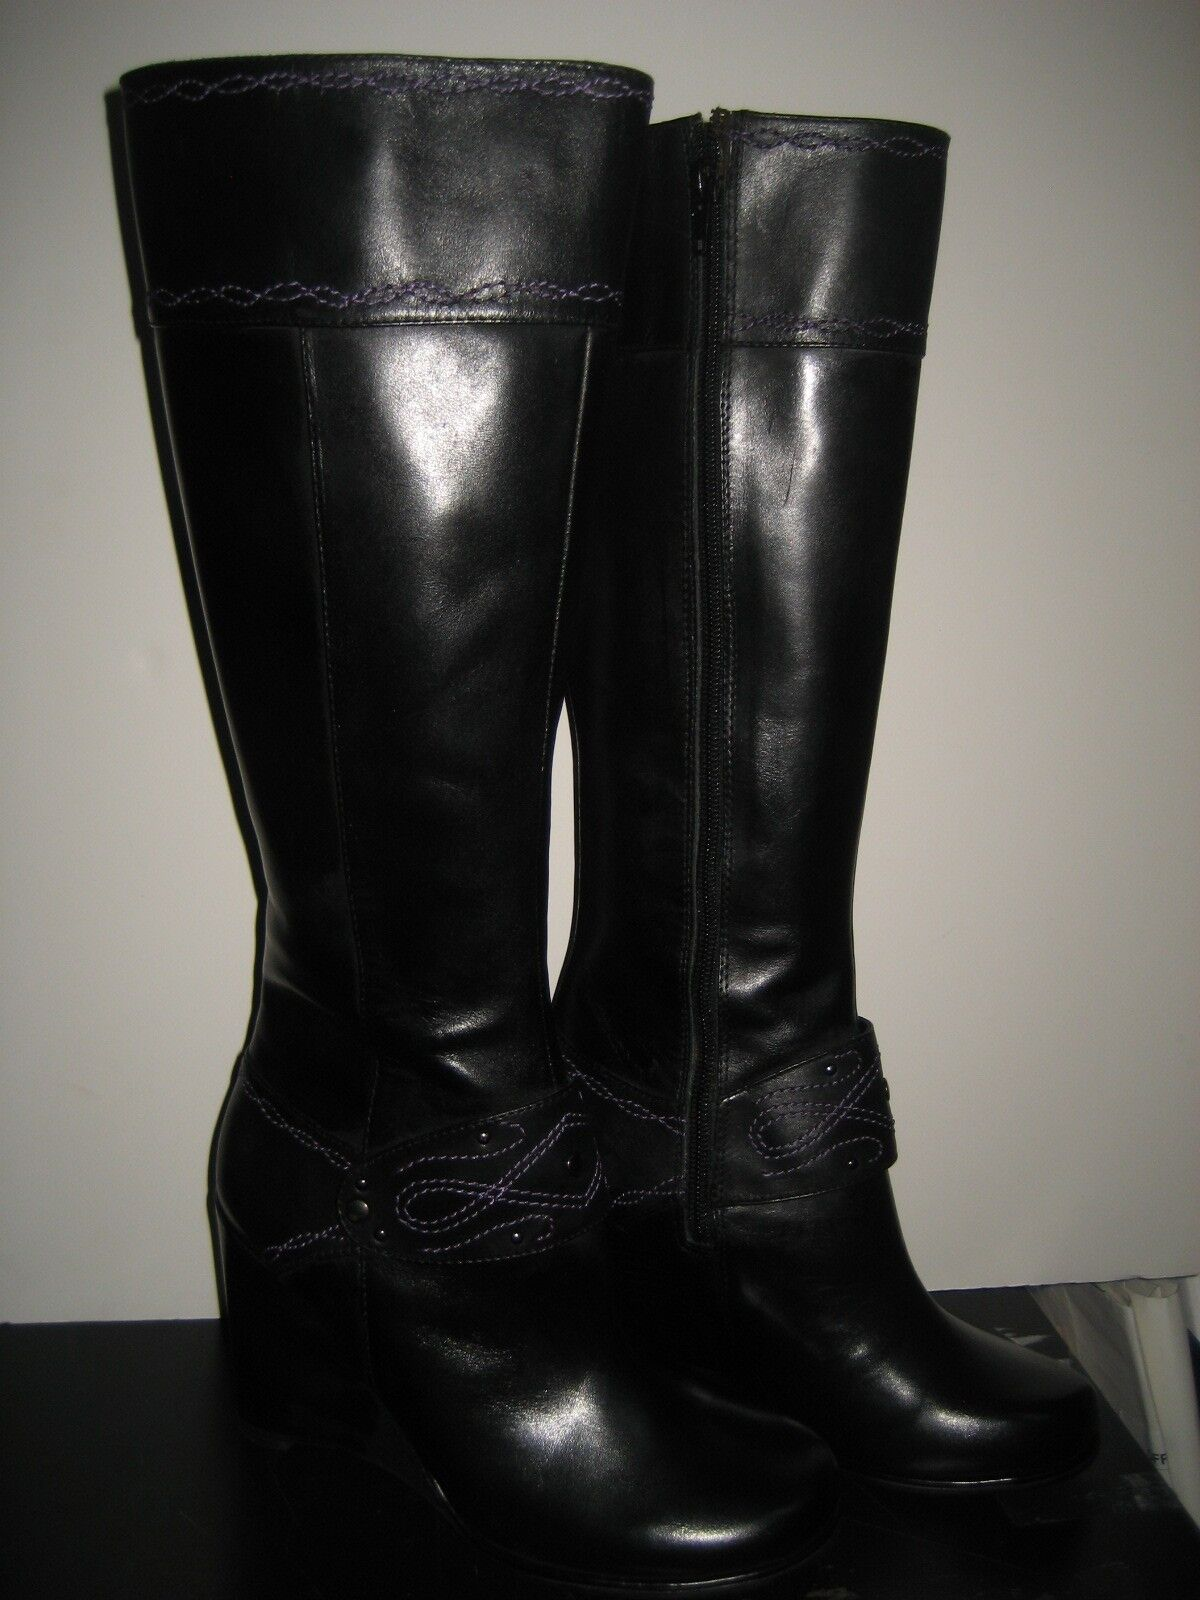 250 NEW Exchange Charles David Womens US 6 Wedge Black Leather Knee High Boots